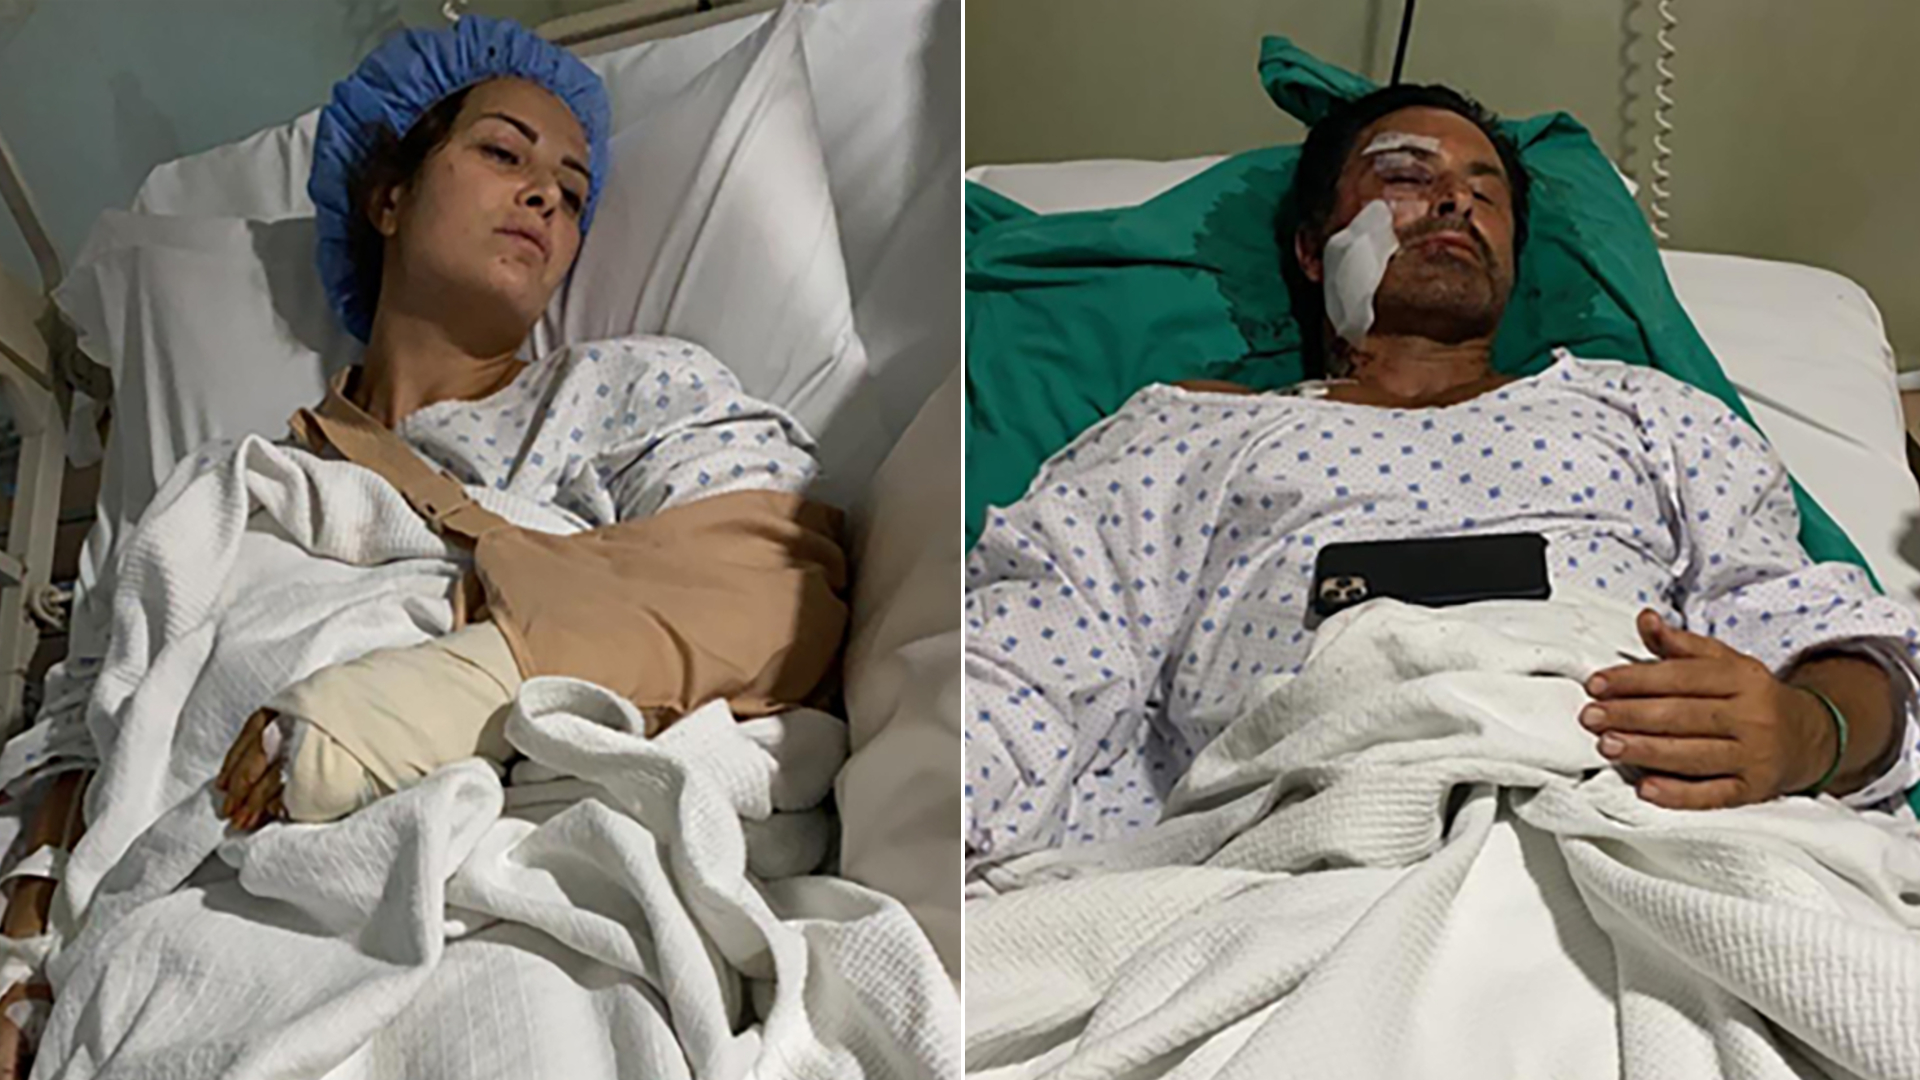 Lina Alameh, and Imad Khalil are seen in their hospital beds after undergoing surgery for injuries sustained in the Beirut explosion in undated photos the couple provided to CNN.